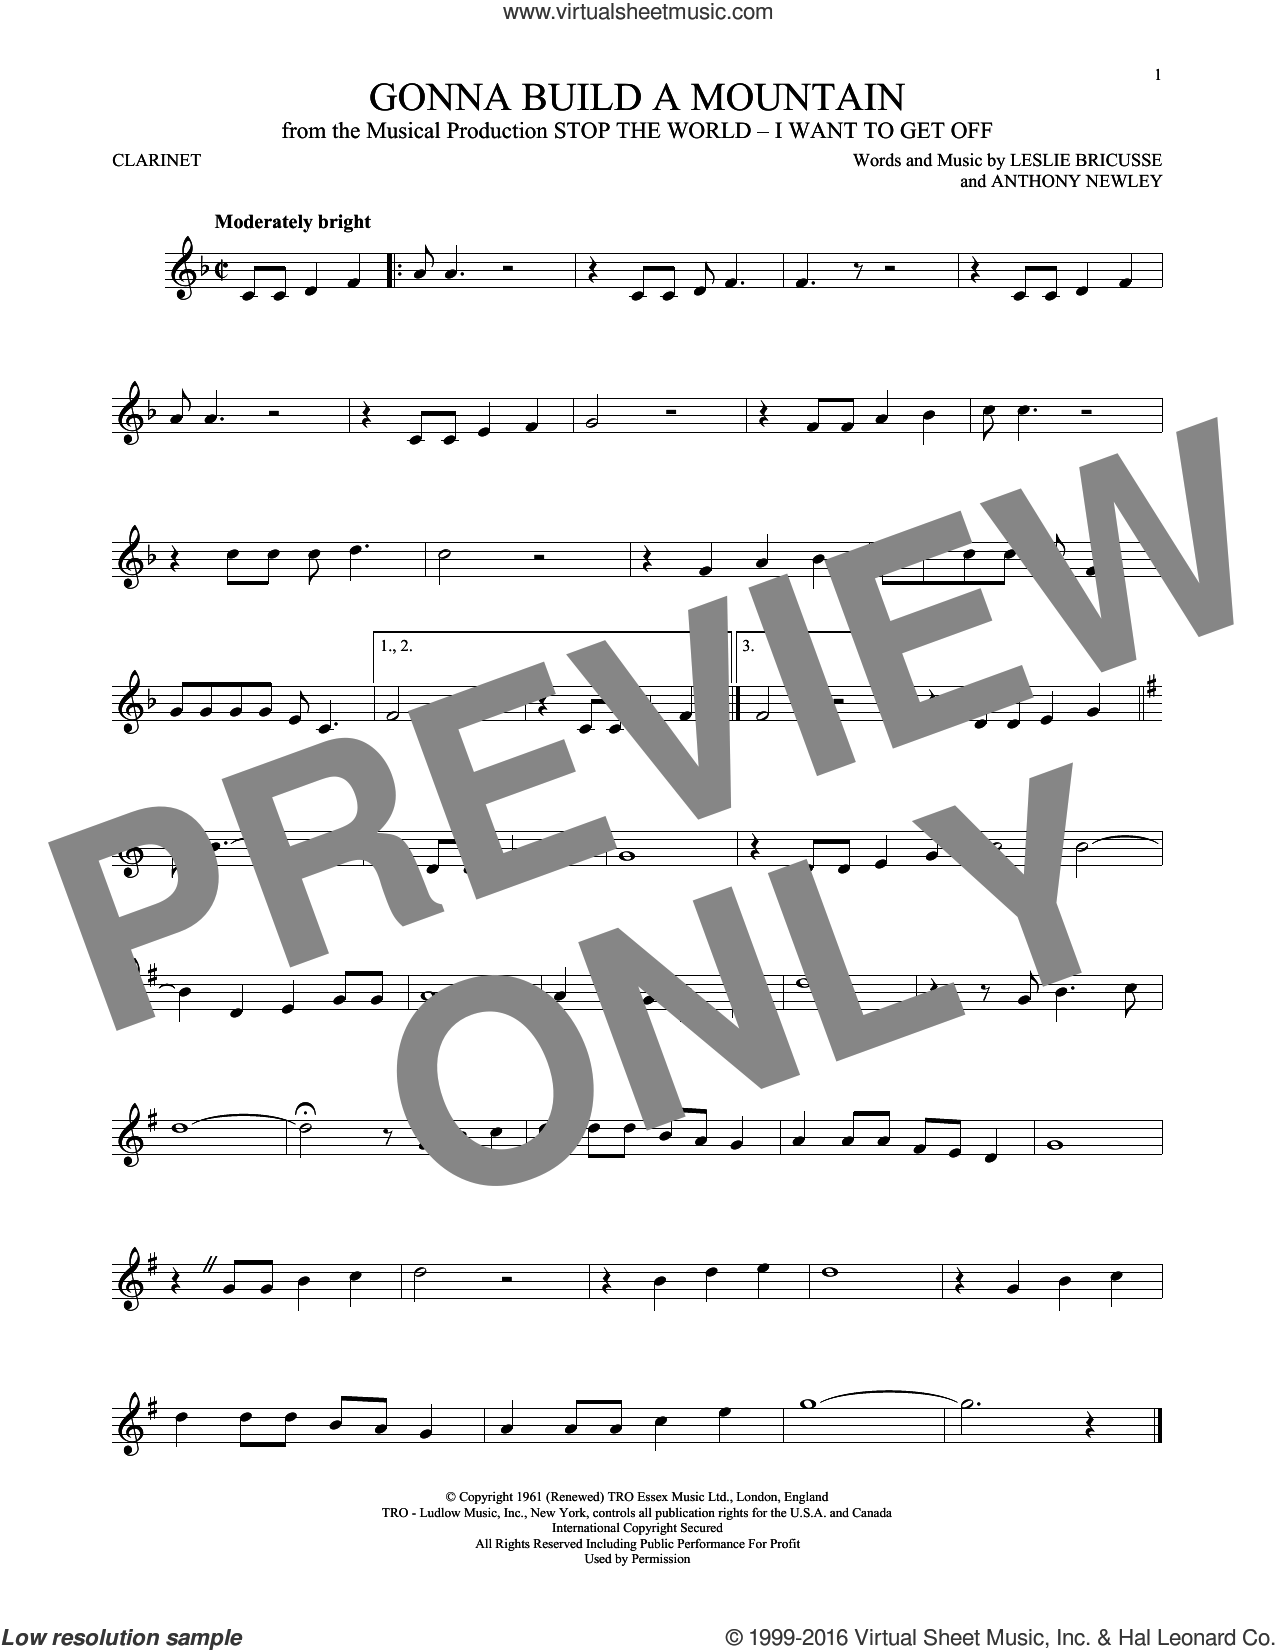 Gonna Build A Mountain sheet music for clarinet solo by Leslie Bricusse and Anthony Newley, intermediate skill level